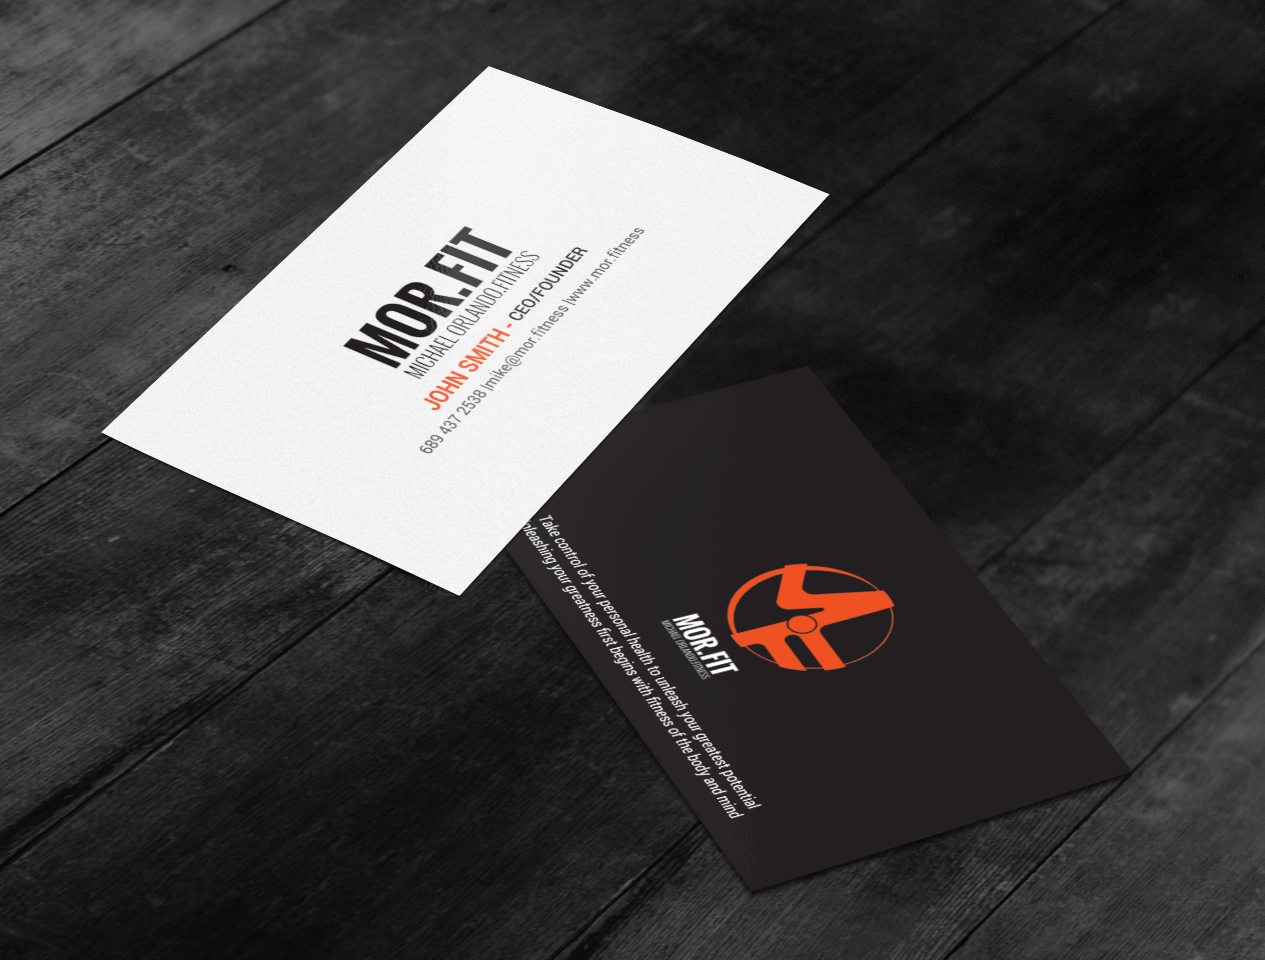 Professional modern personal trainer business card design for business card design by chandrayaaneative for michael orlando fitness design 16736438 colourmoves